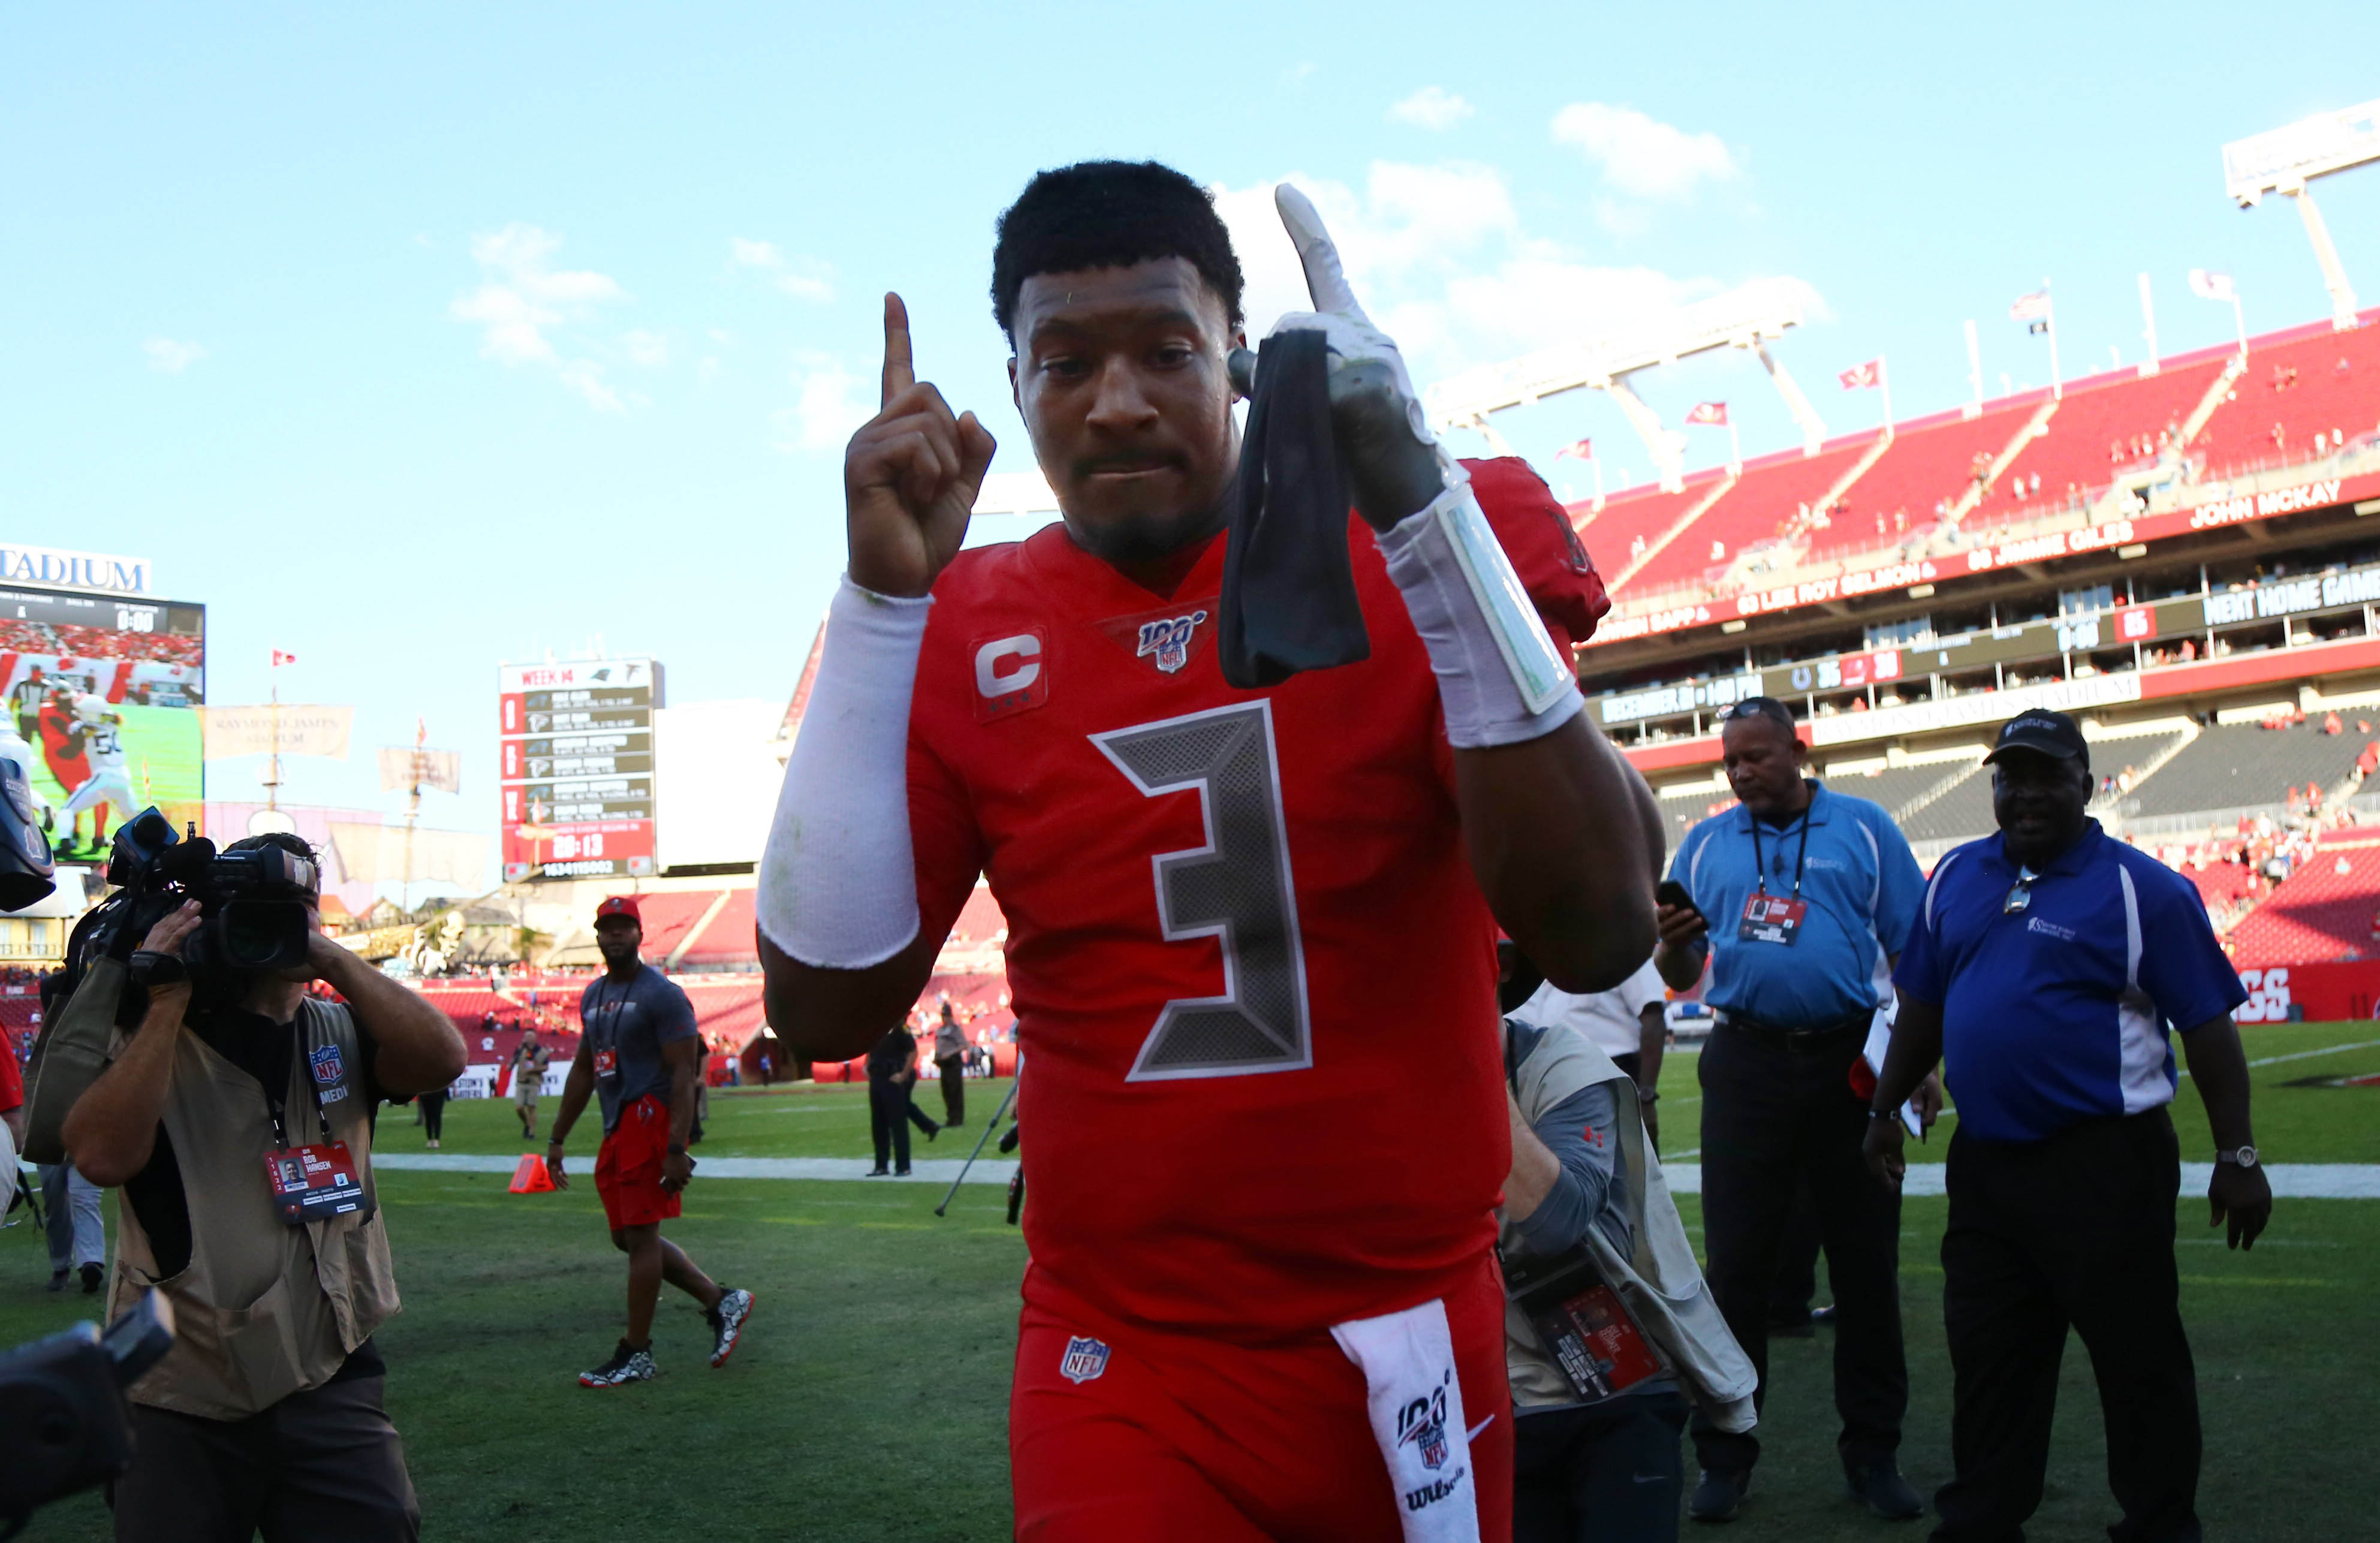 Tampa Bay Buccaneers quarterback Jameis Winston celebrates as he runs off the field after they beat the Indianapolis Colts at Raymond James Stadium.